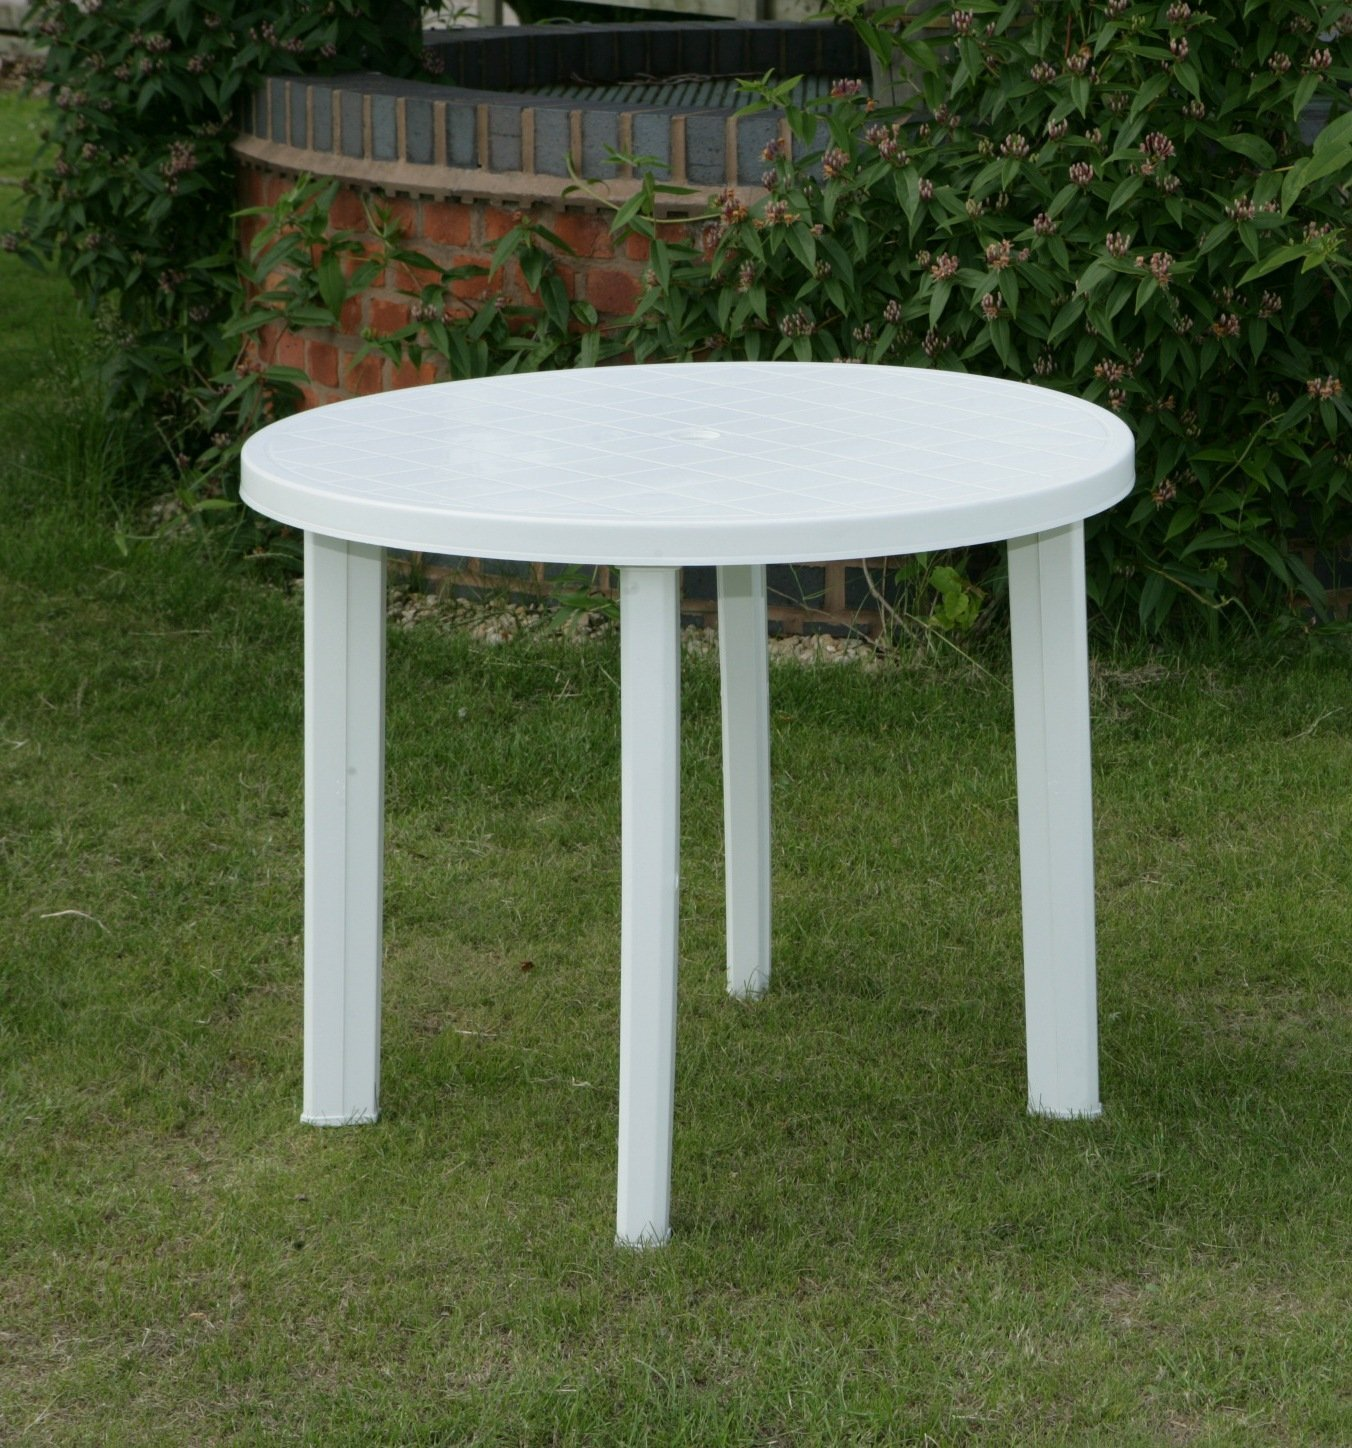 90CM White Resin Patio Table Amazon Garden & Outdoors